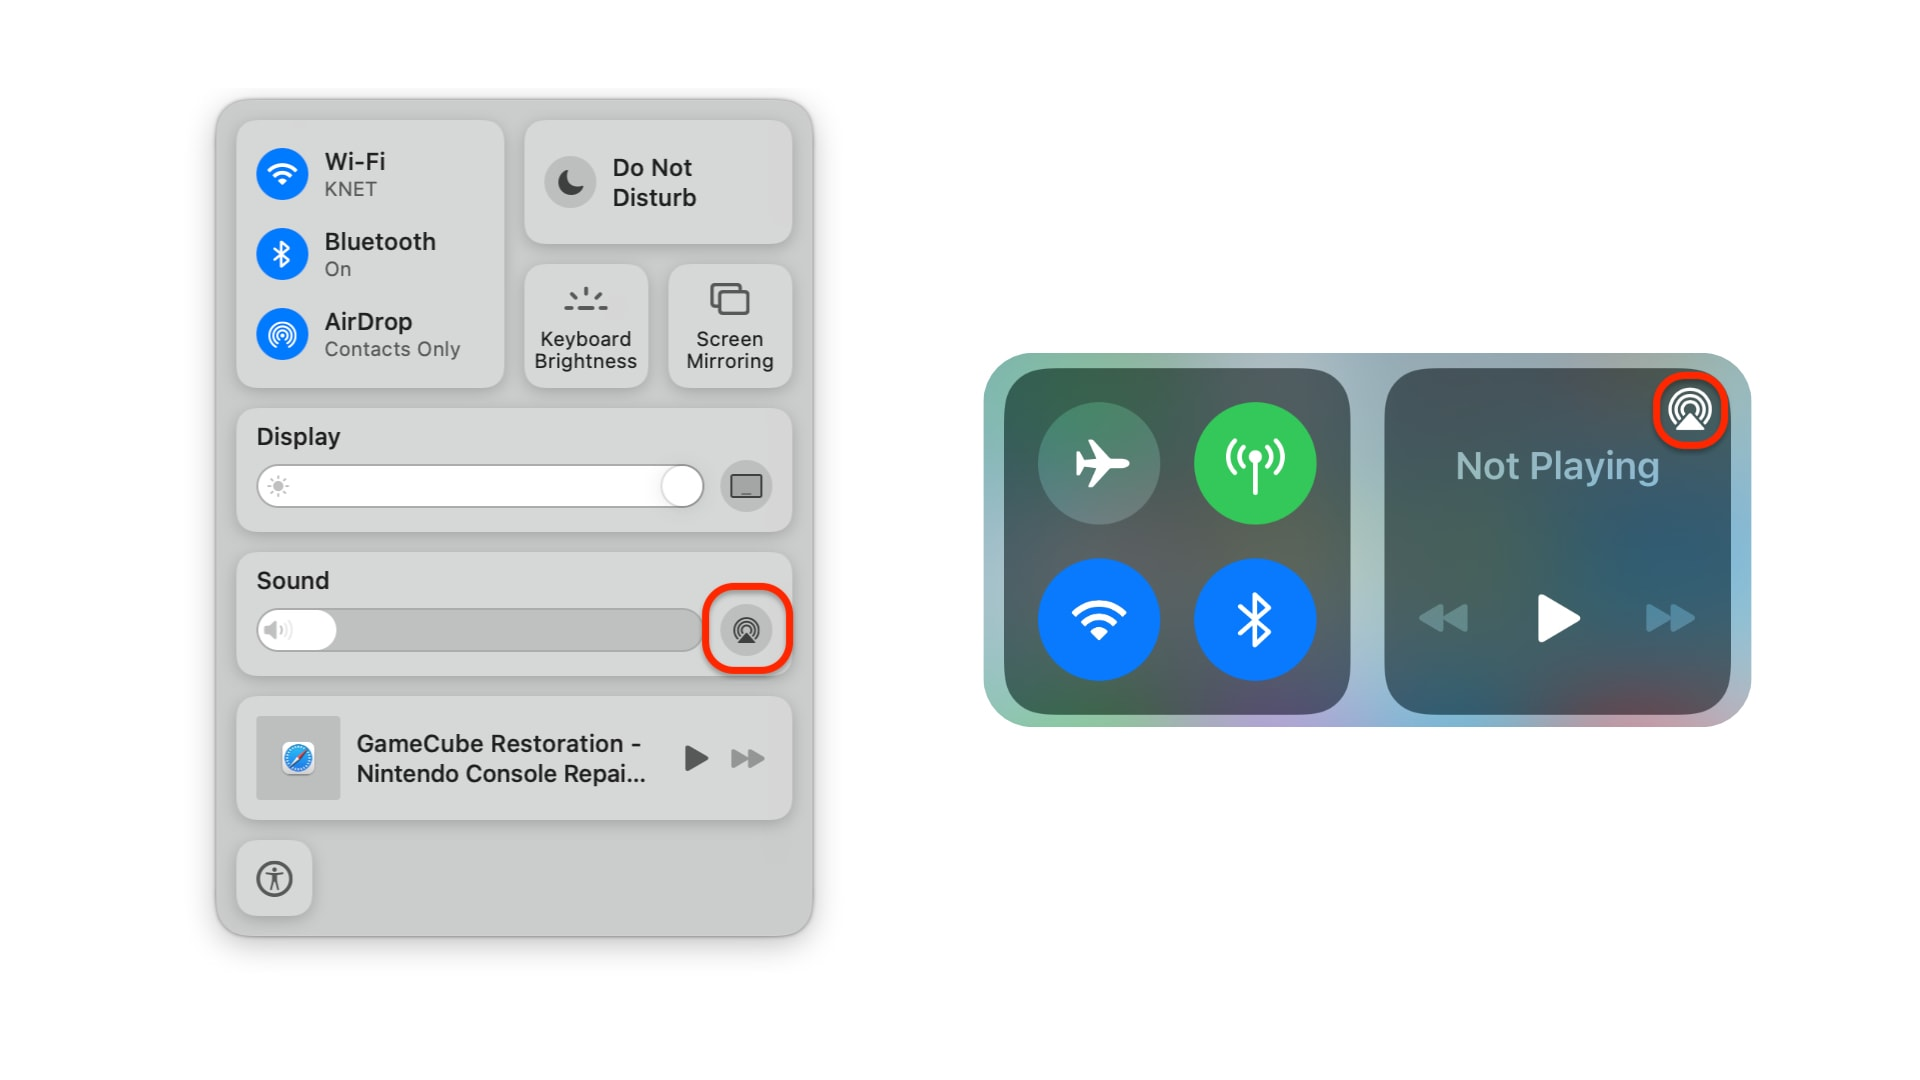 Manage Bluetooth devices in Control Center